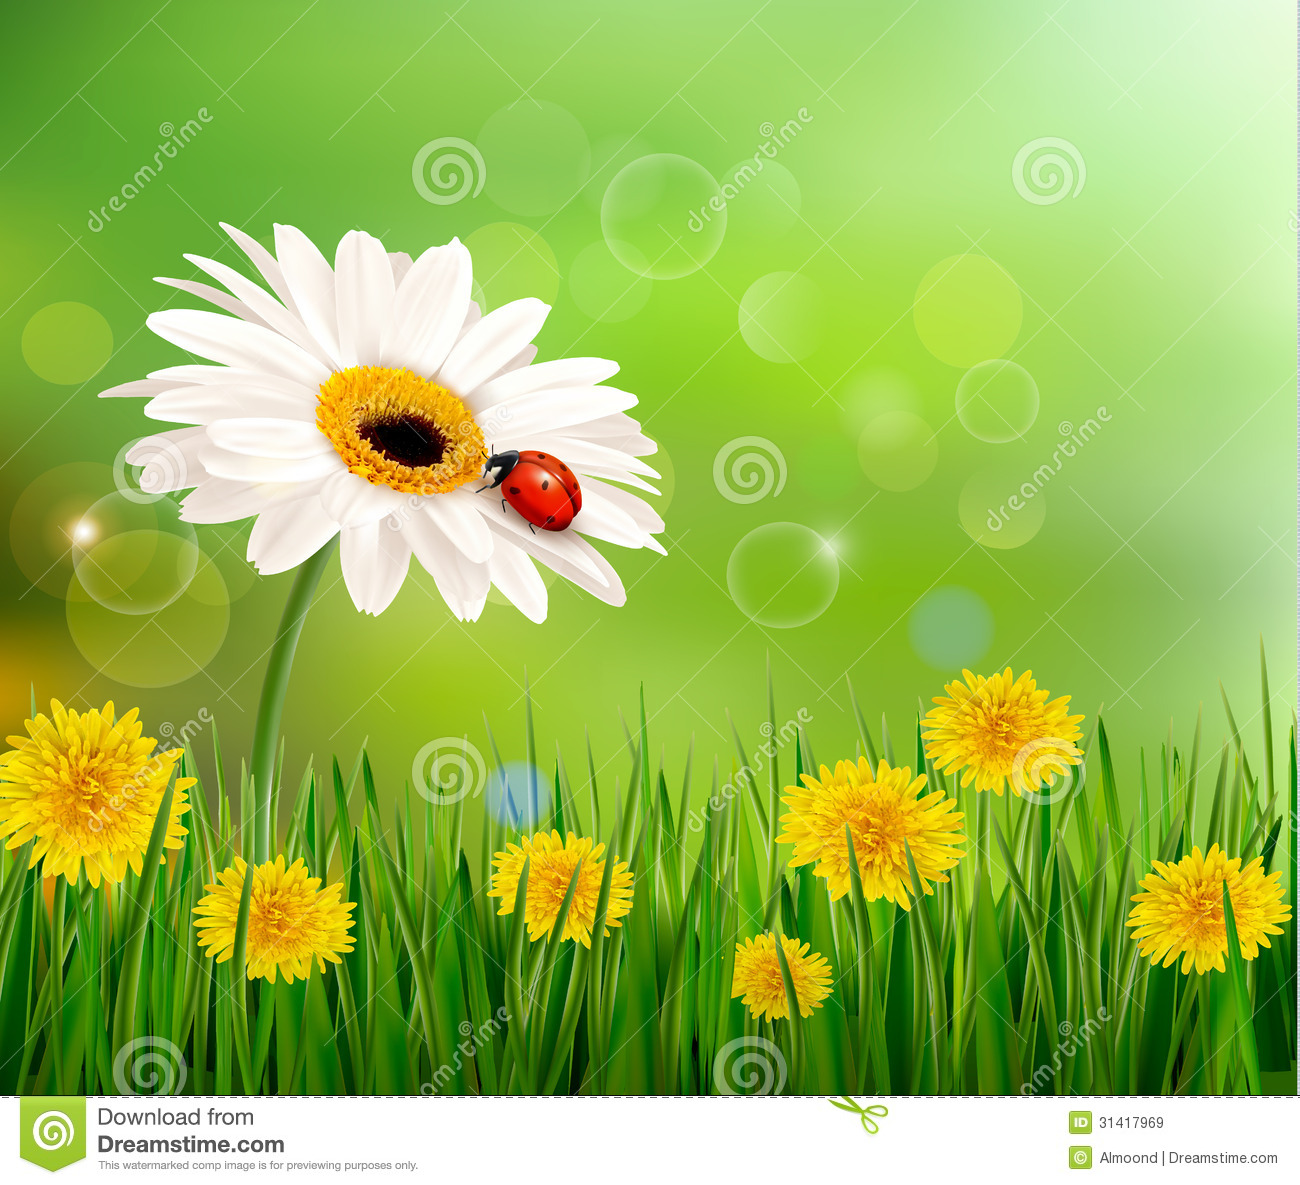 Spring Flower With Green Background Vector 02 Free Download: Summer Nature Background With Ladybug On White Flo Stock